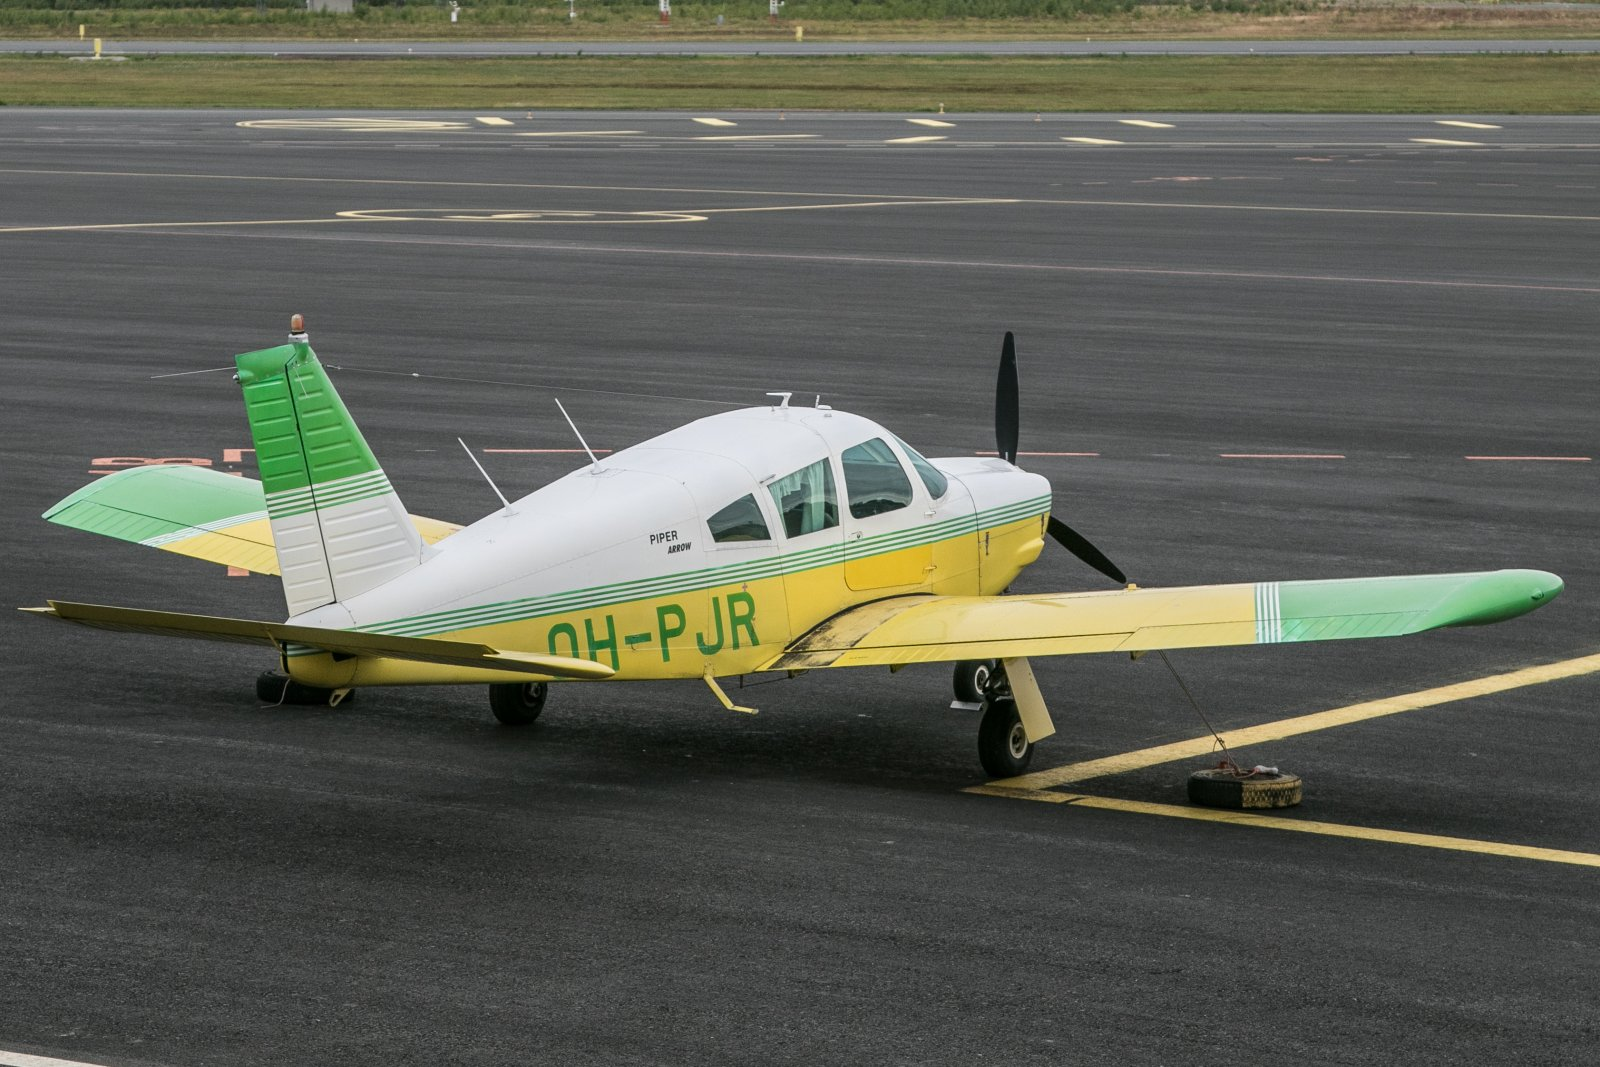 OH-PJR, Piper 28R-200 Cherokee Arrow